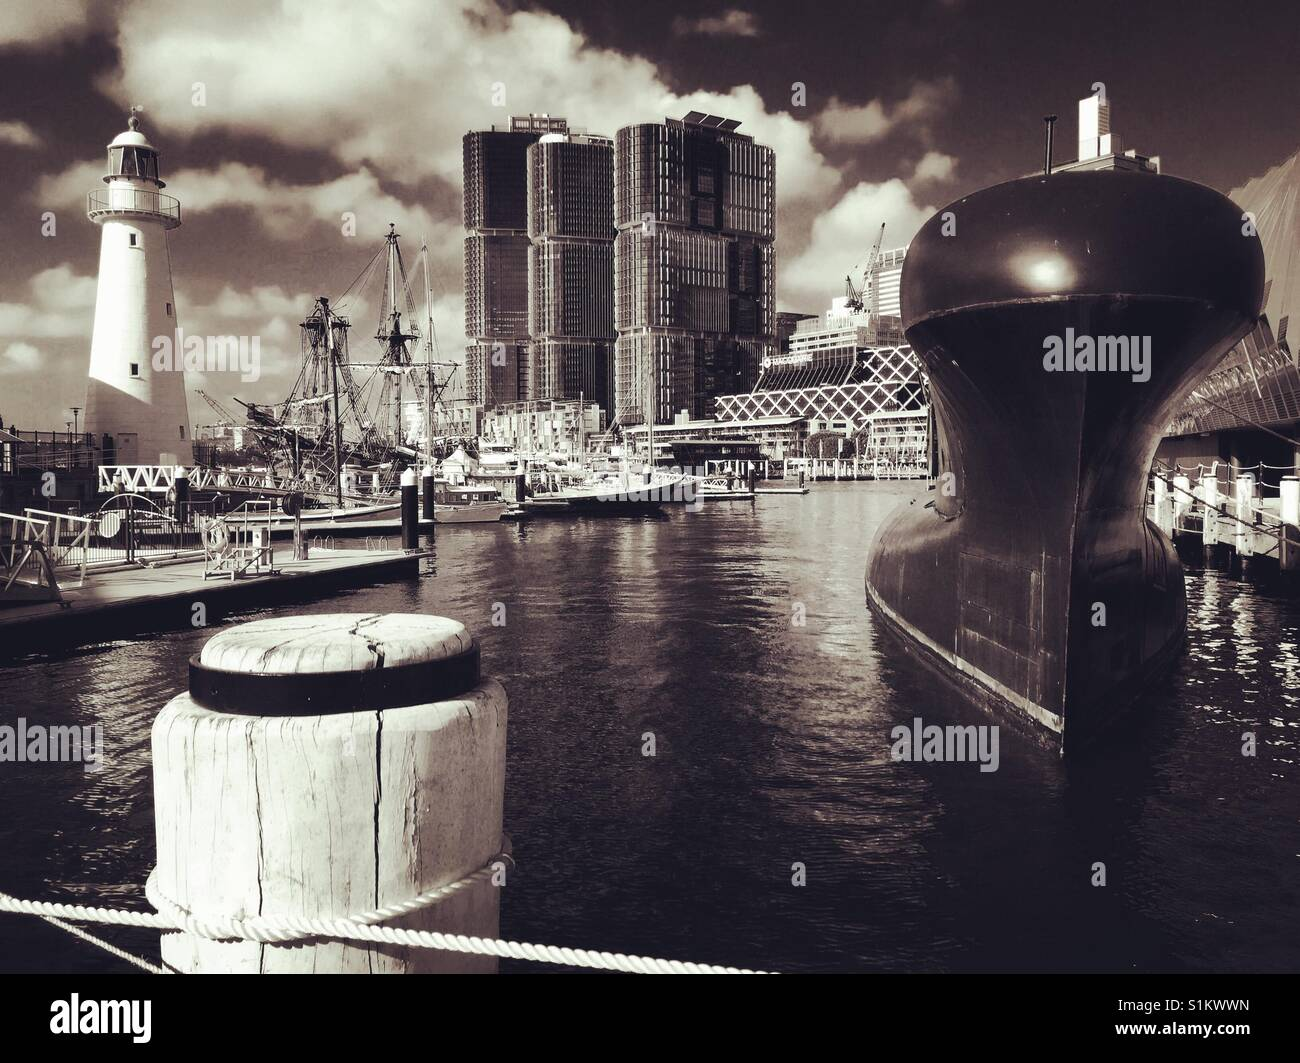 Sydney Darling Harbour black and white - Stock Image